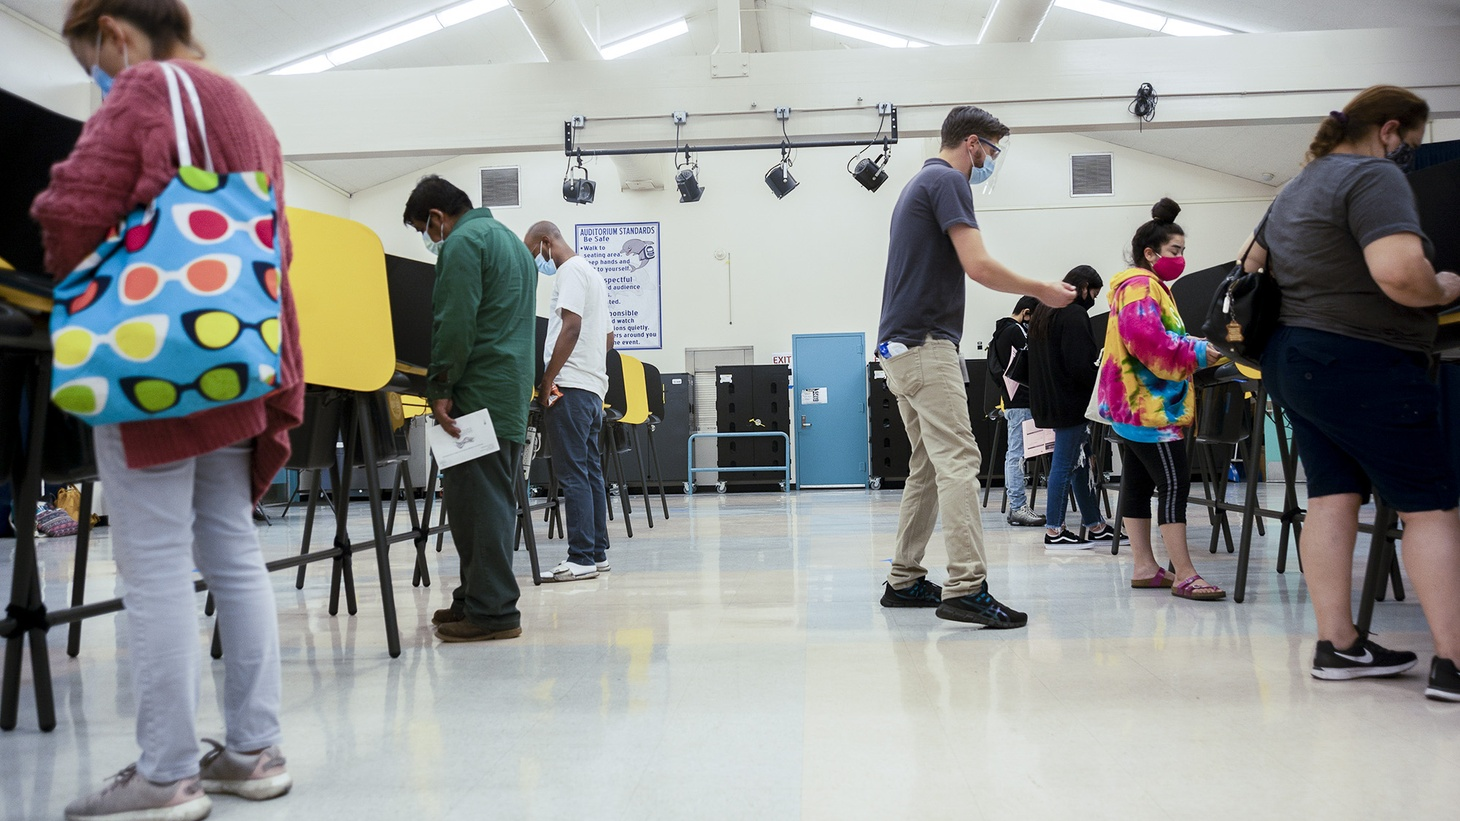 Volunteer poll worker David Saunders helps a voter at a Los Angeles Elementary School polling place on Election Day. Early California results provided some answers but remaining questions.